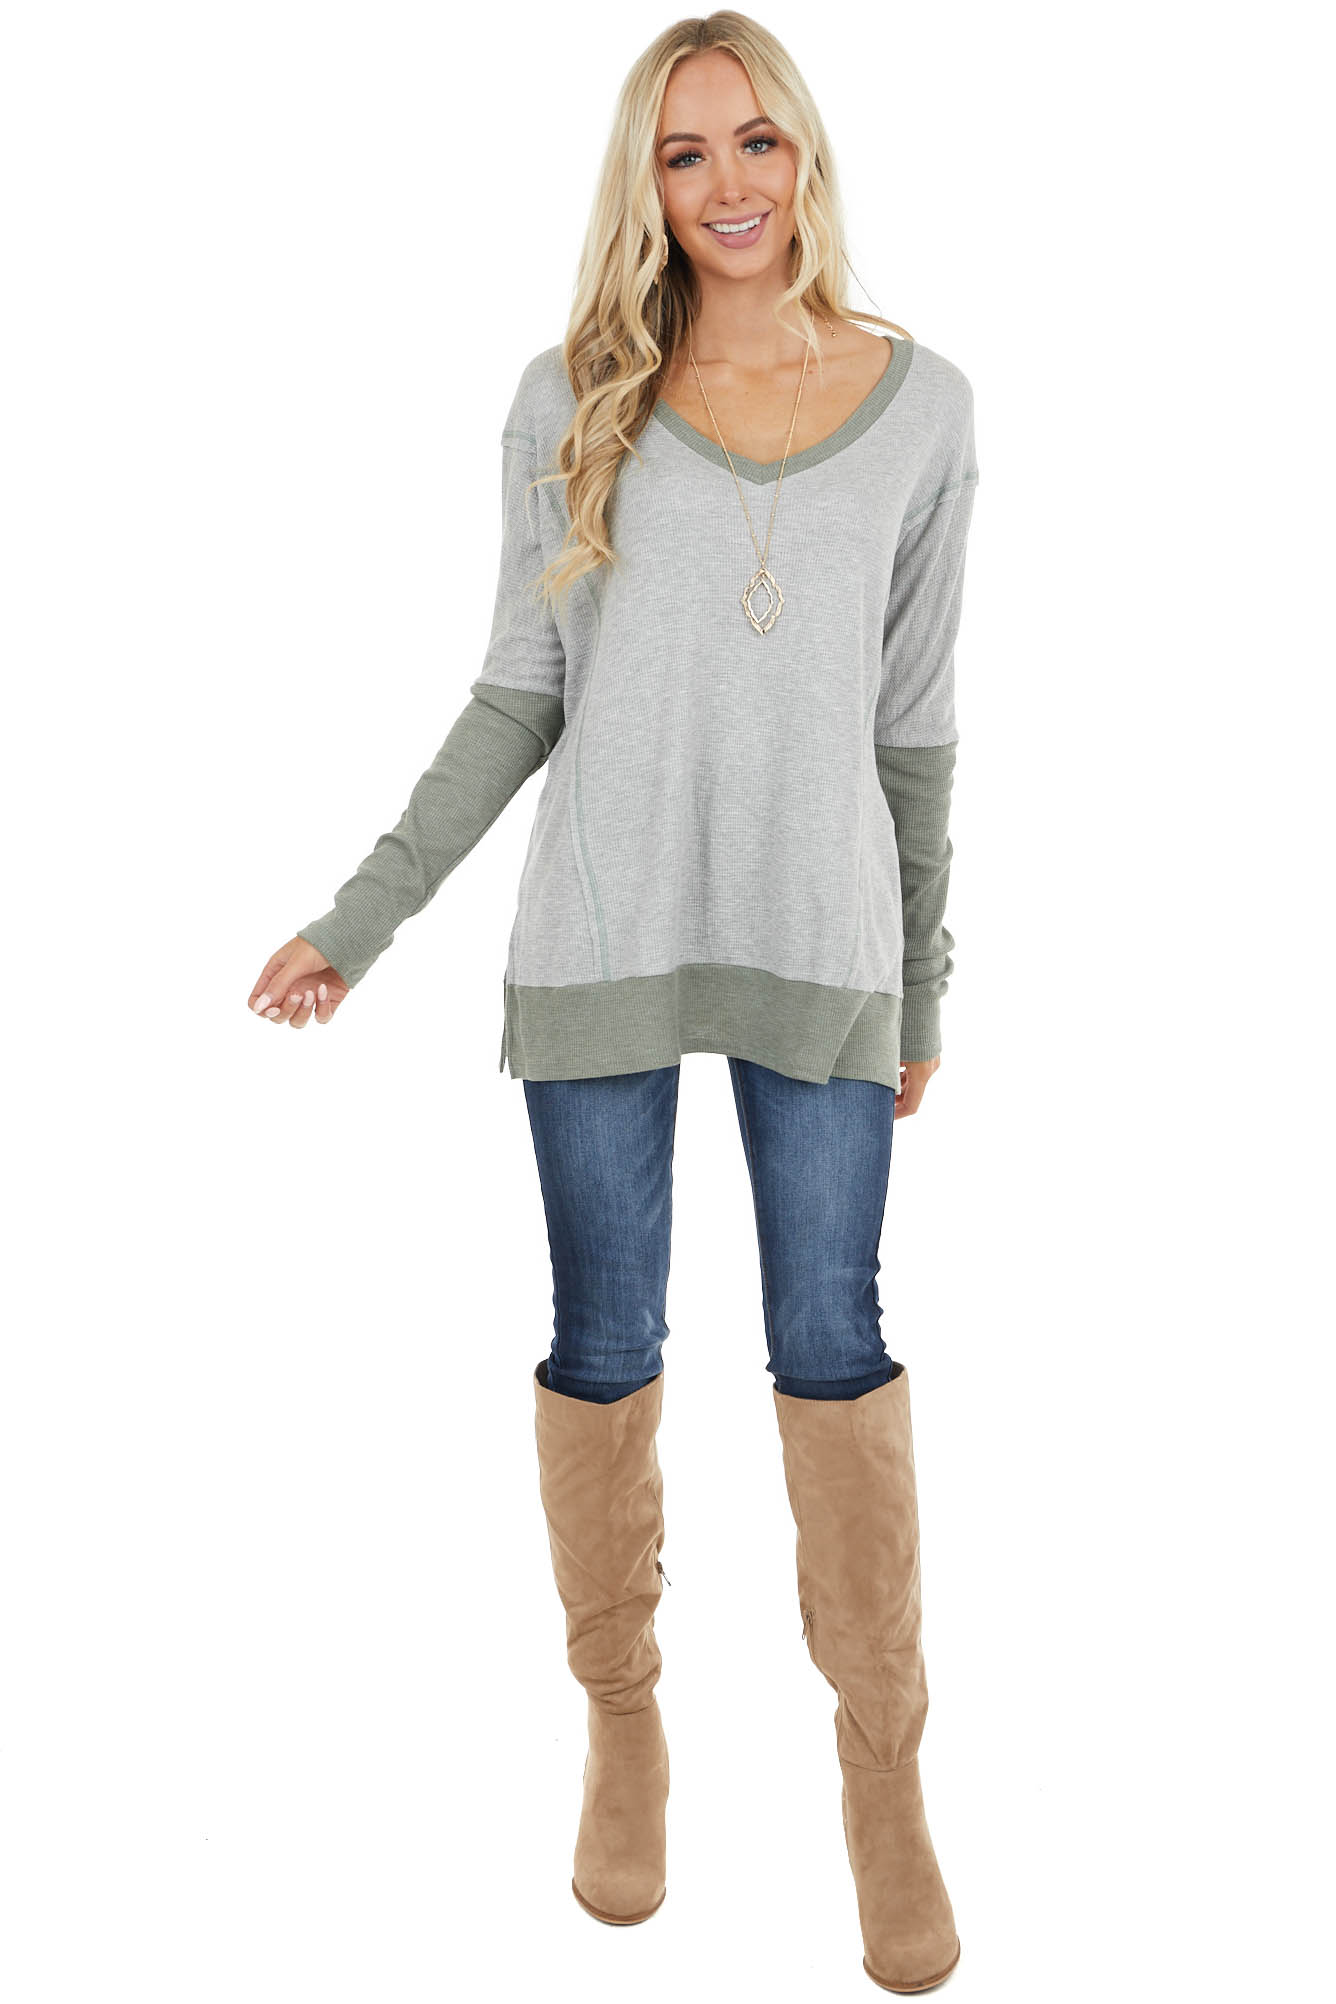 Dove Grey and Sage Contrast Waffle Knit V Neck Top